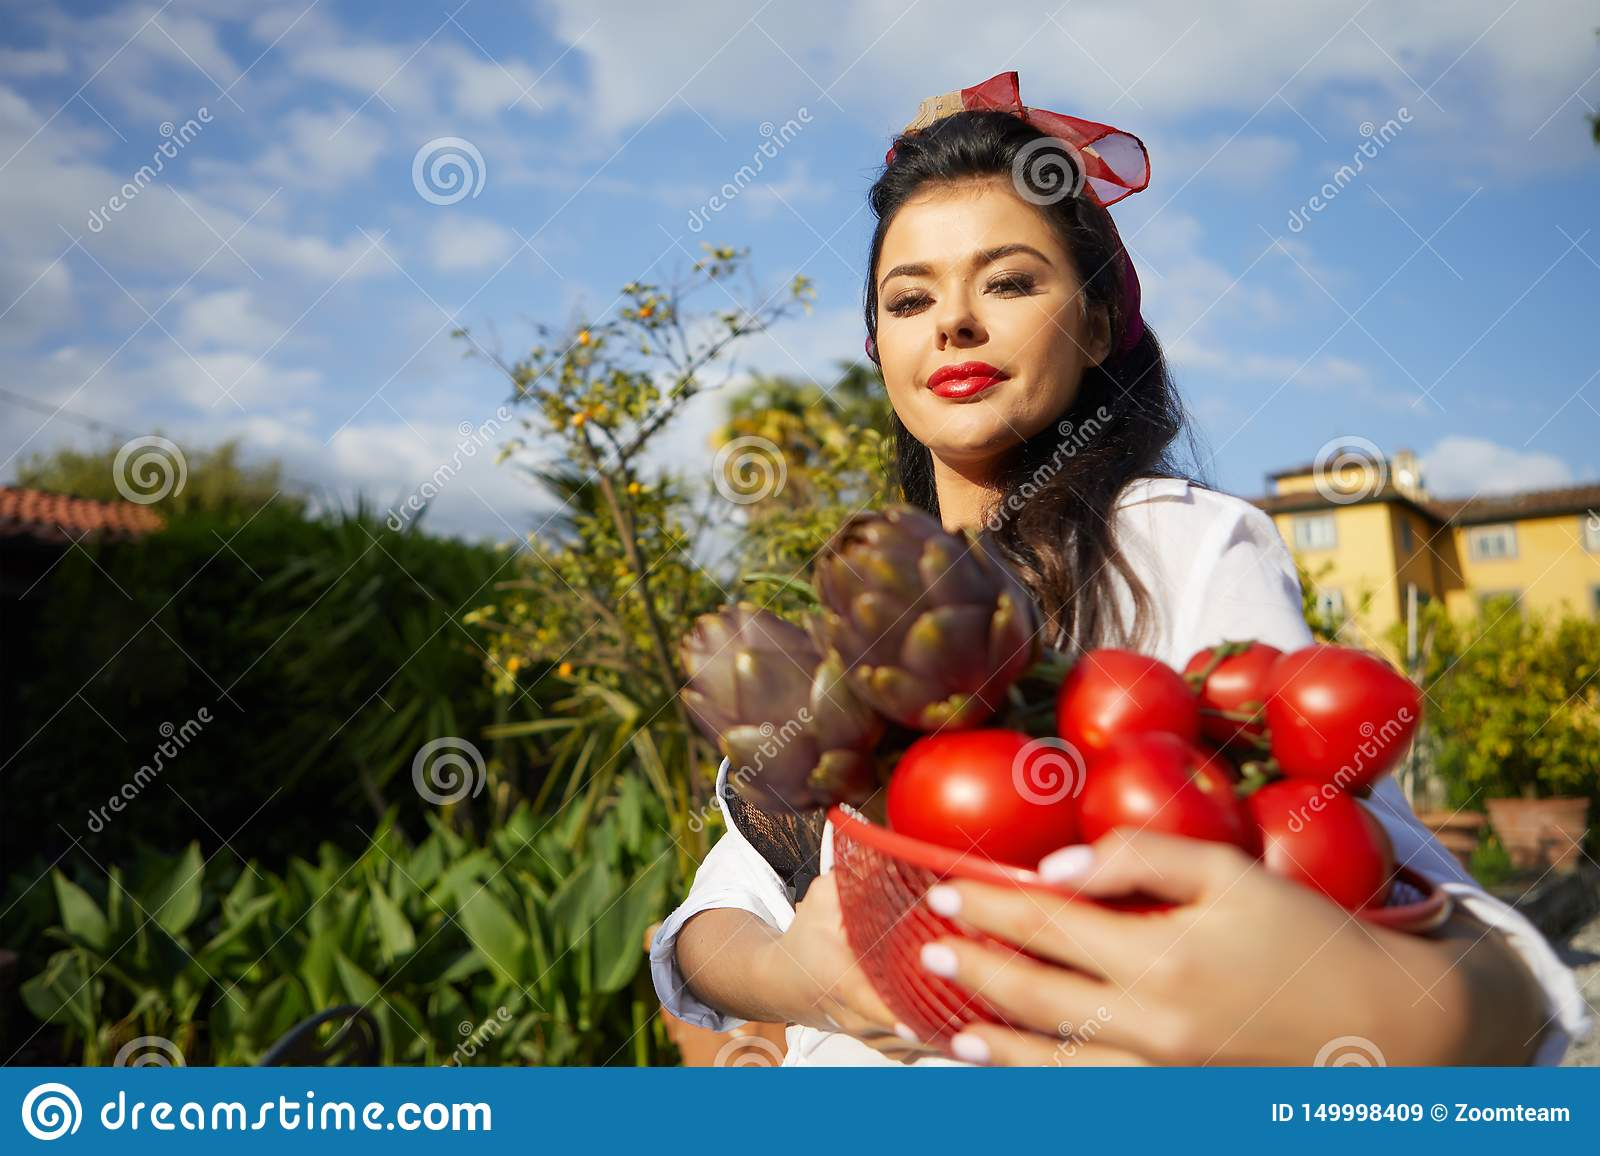 An Italian woman, a housewife, collects vegetables for dinner in a home garden